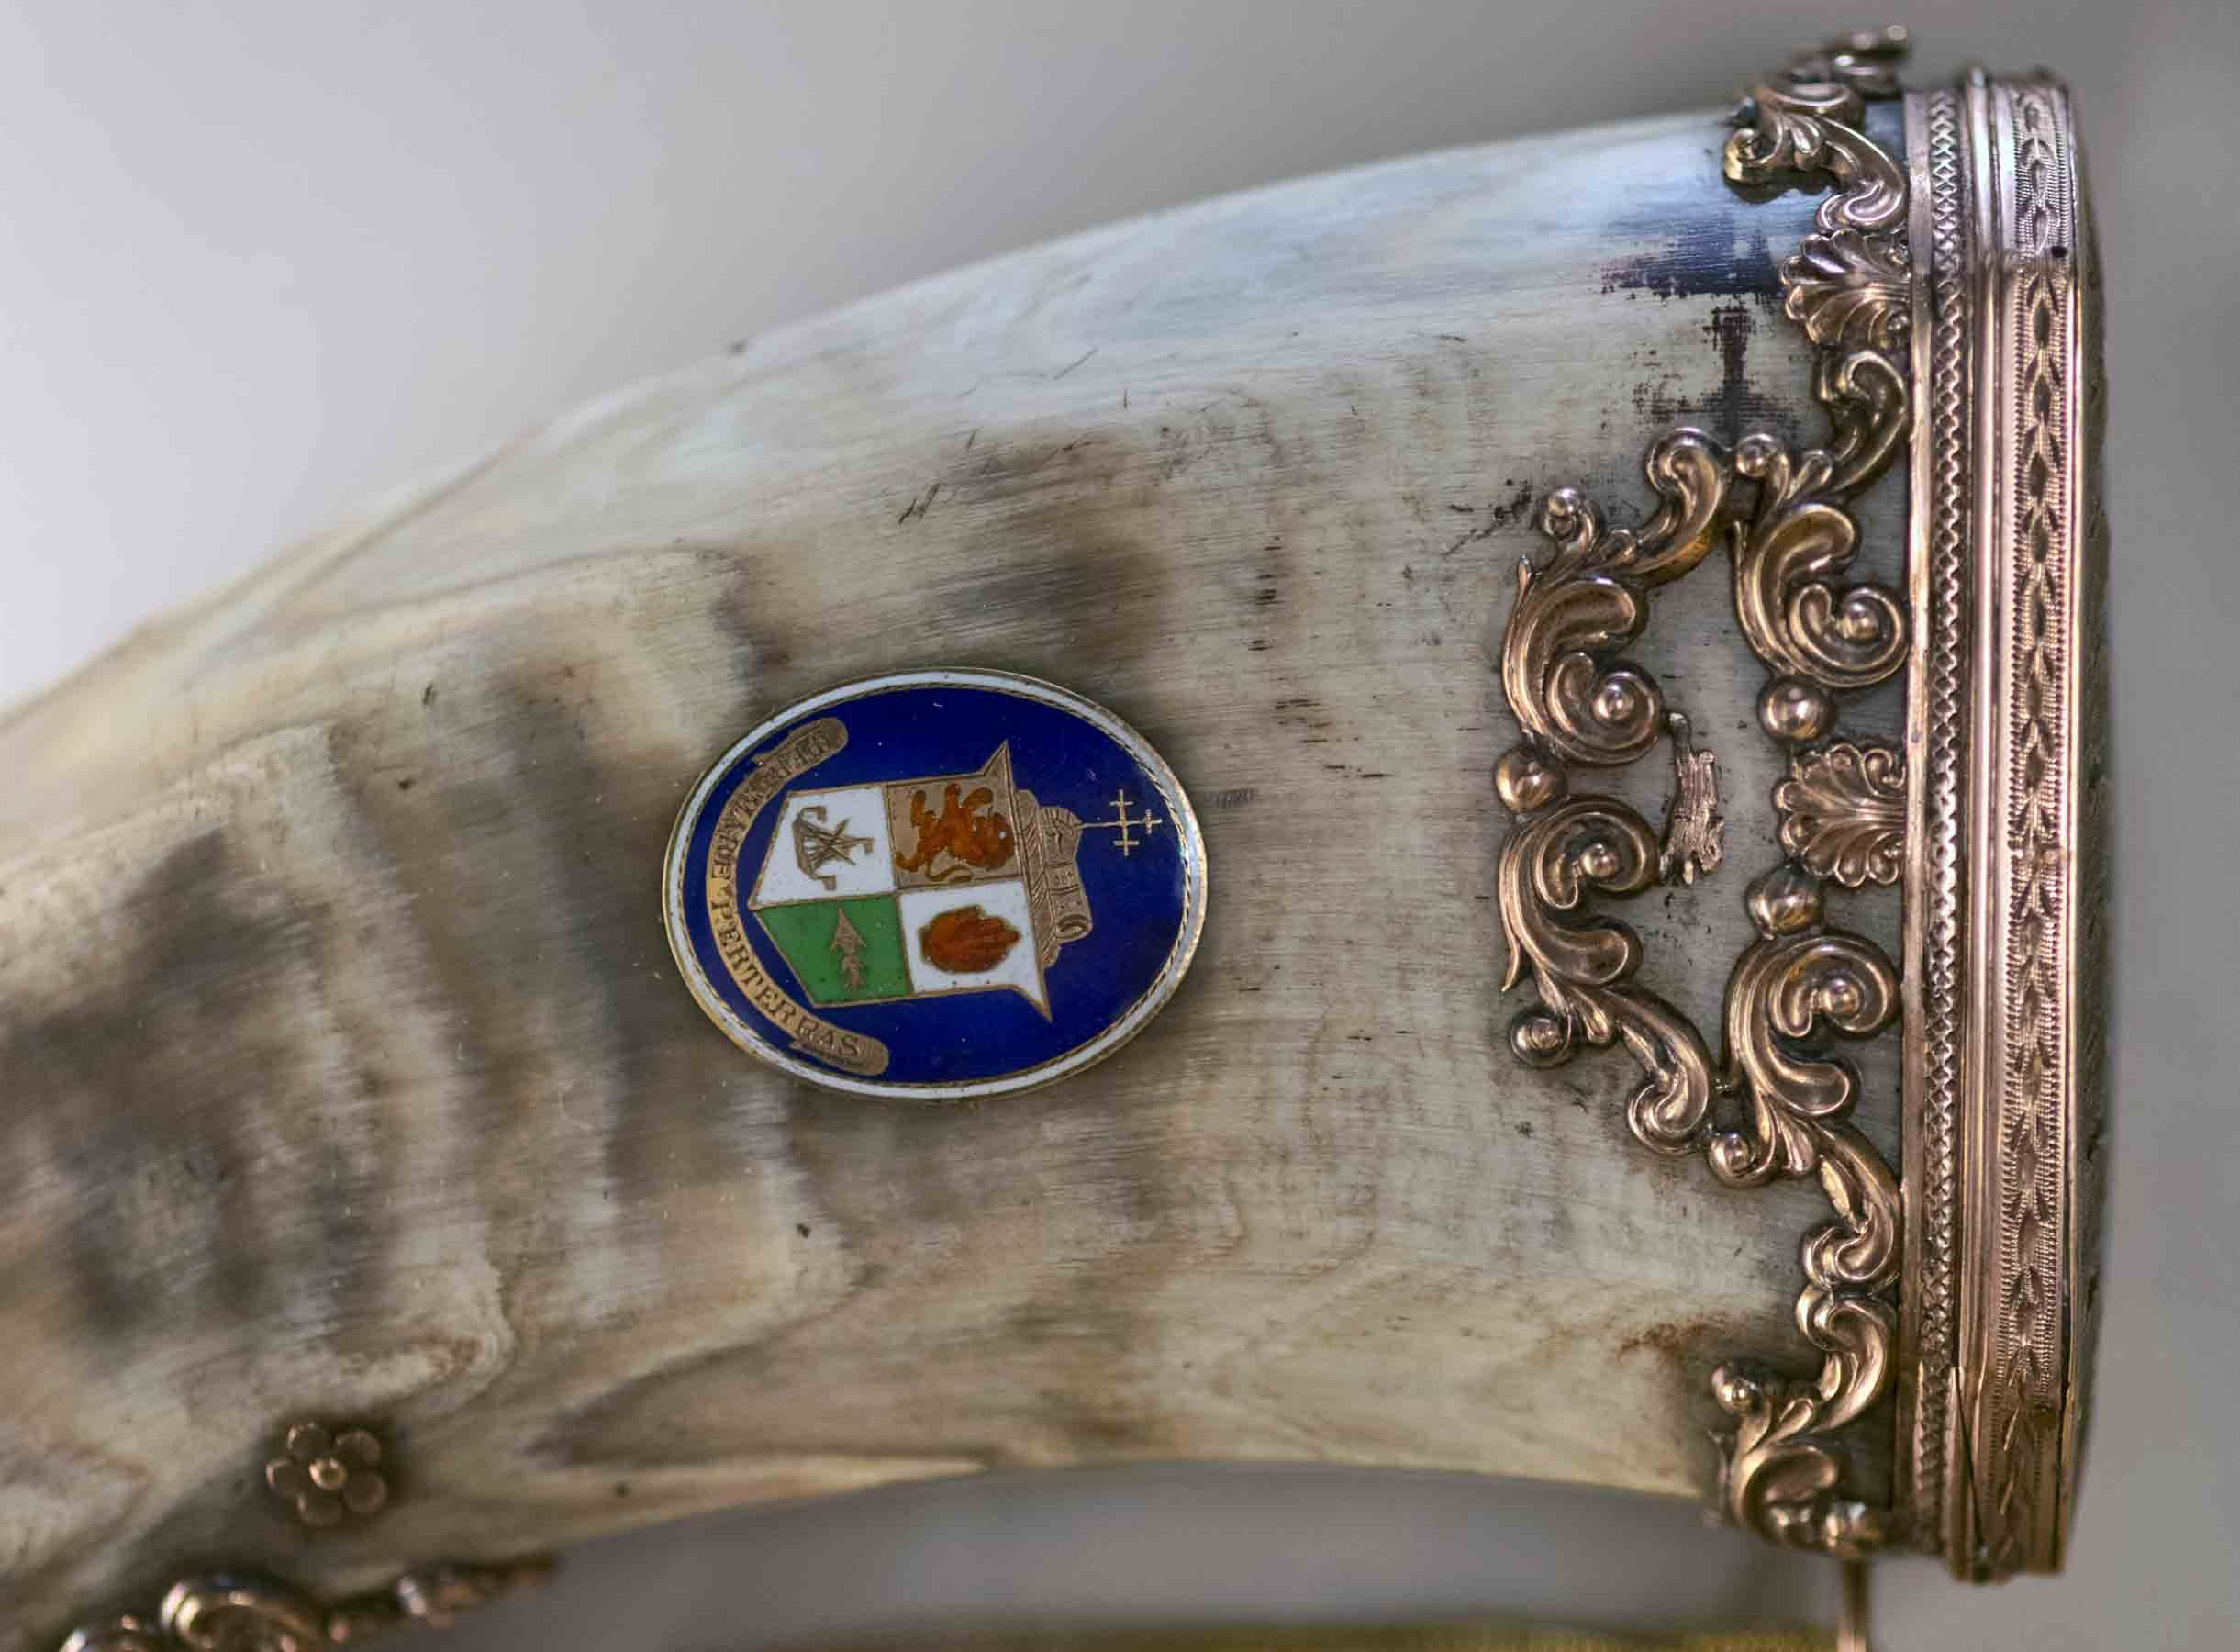 Detail of powder horn made for Col Alasdair Ranaldson MacDonell of Glengarry (1771-1828)